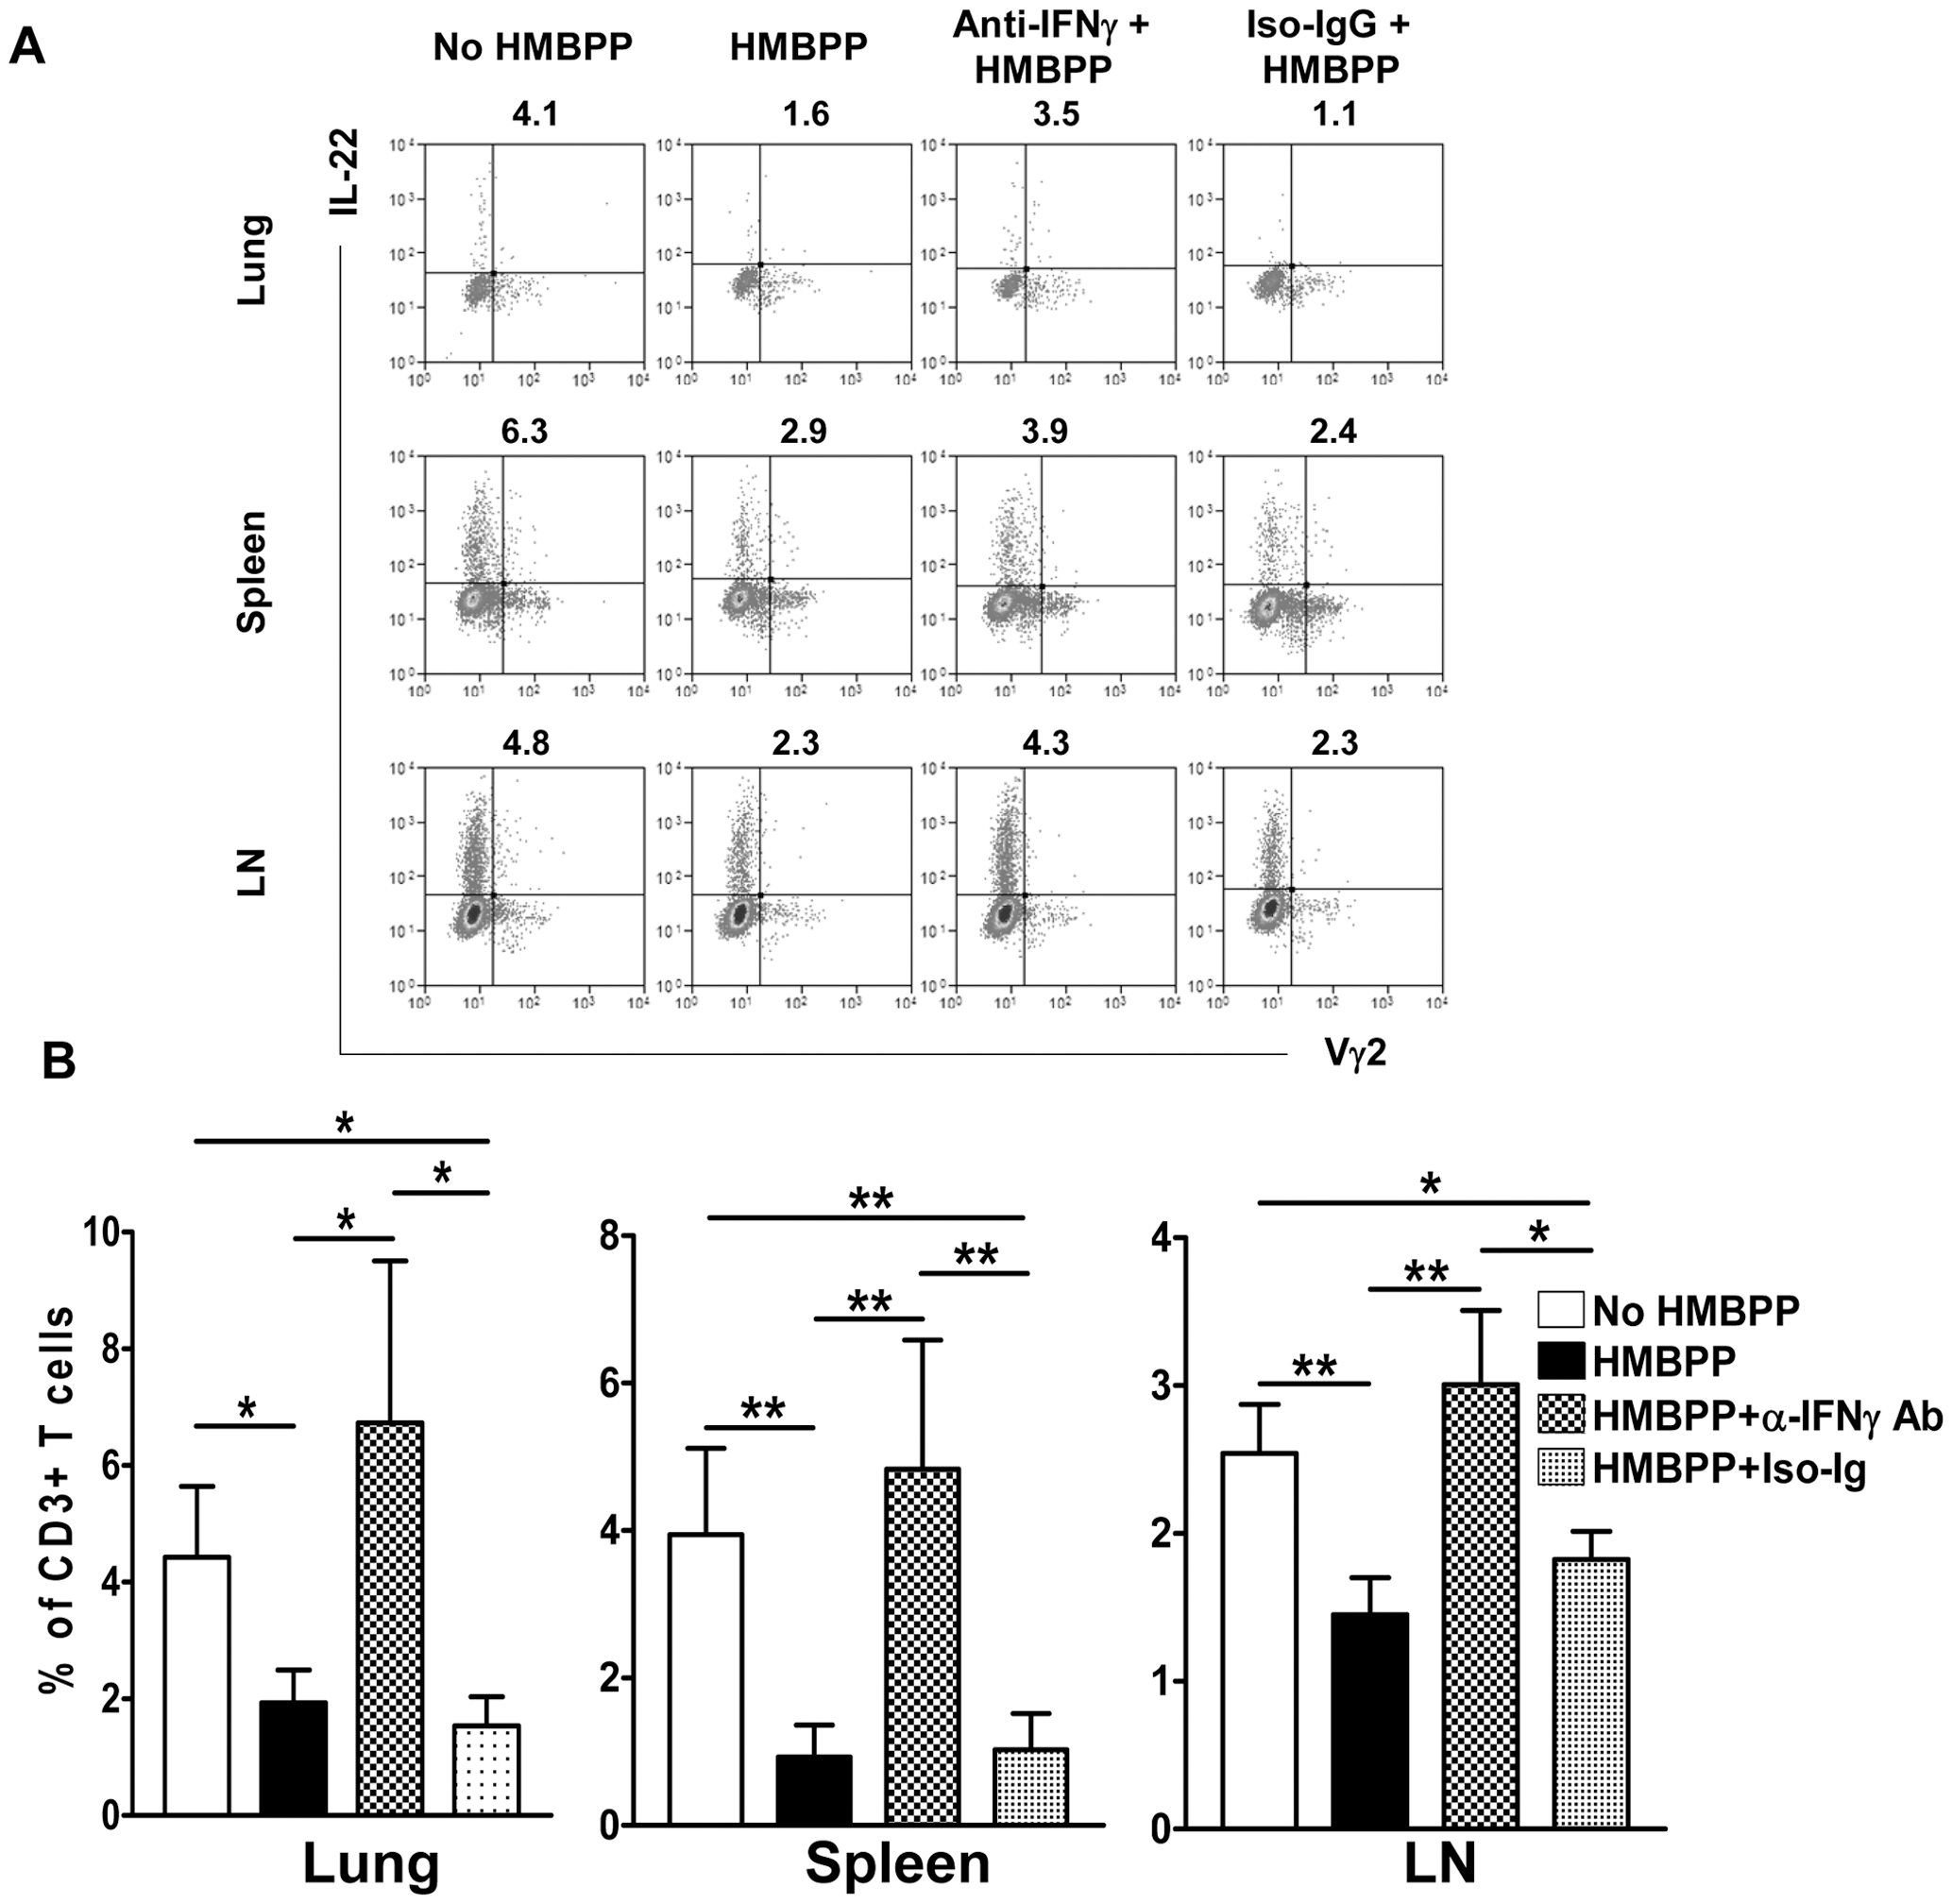 Anti-IFNγ neutralizing Ab treatment reversed the HMBPP-mediated down-regulation effect on IL-22-producing T cells.